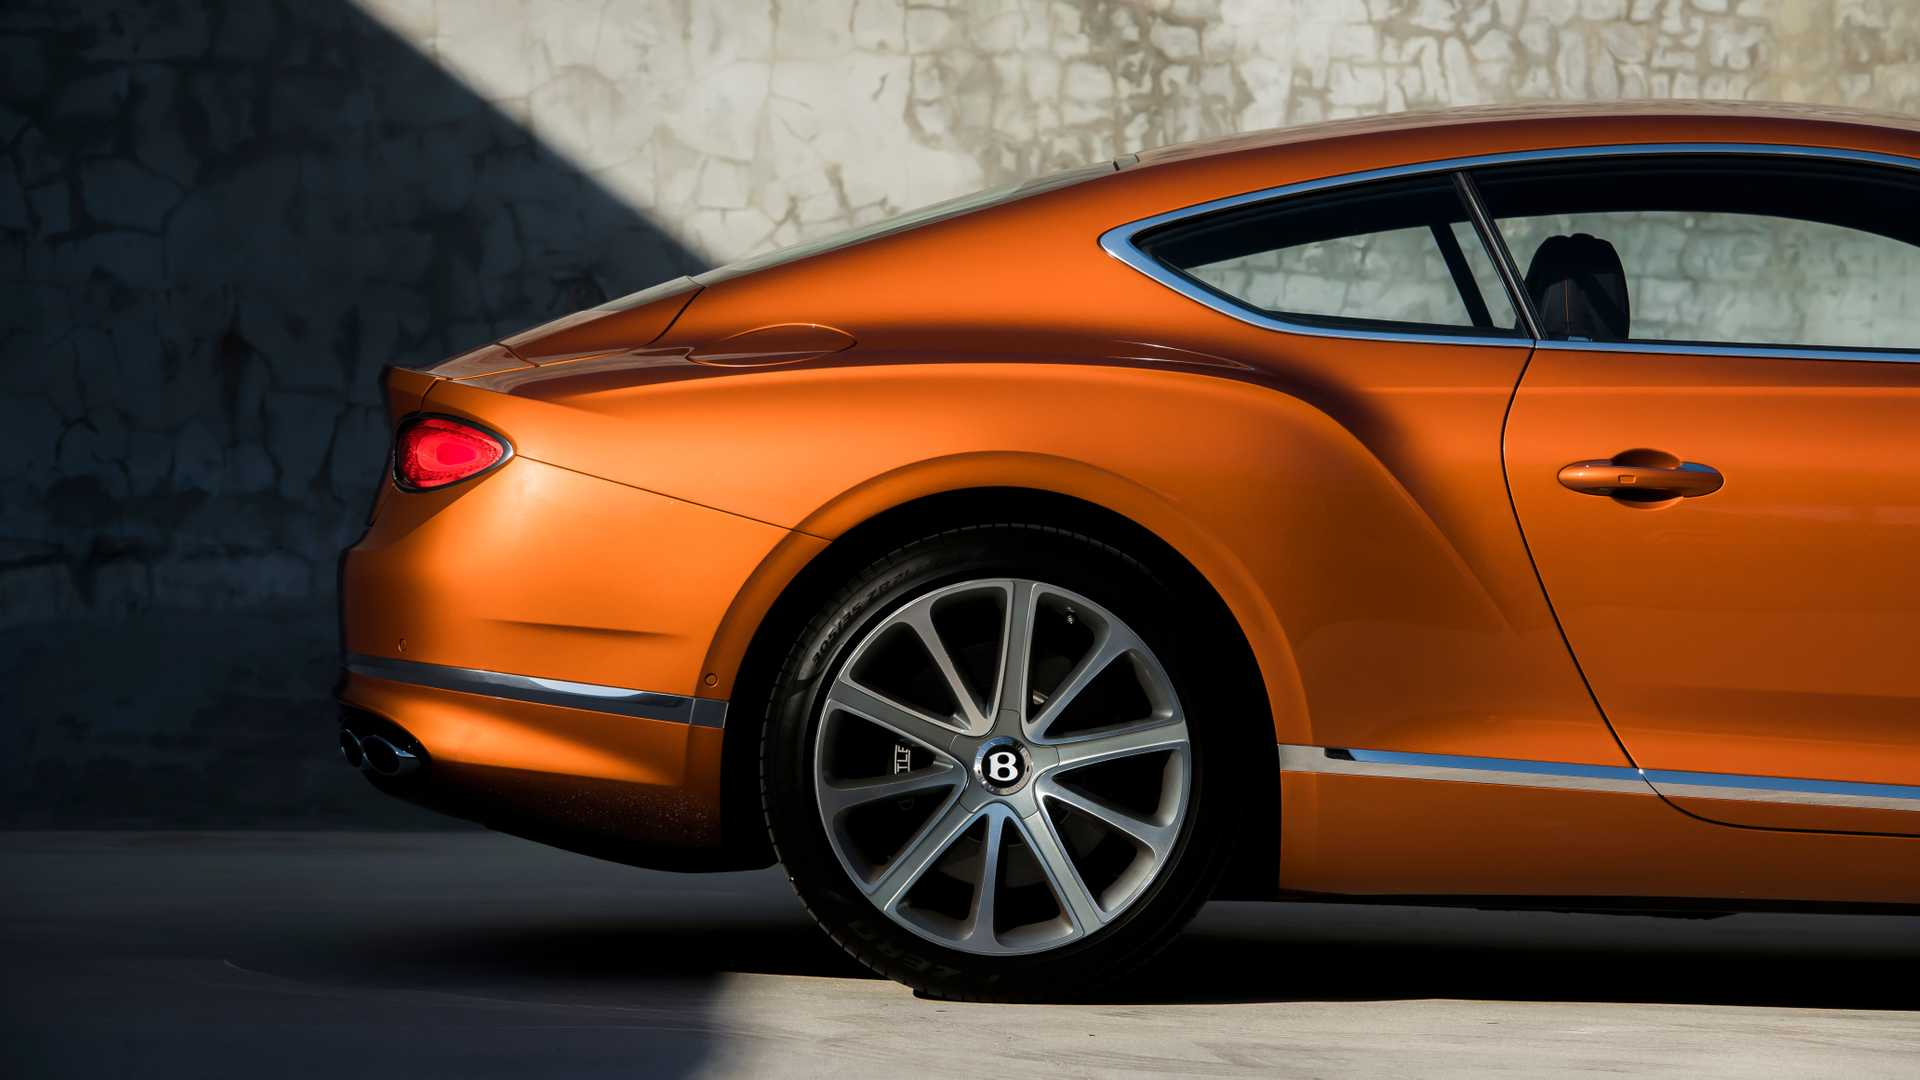 2020 Bentley Continental GT V8 Coupe Detail Wallpapers (12)